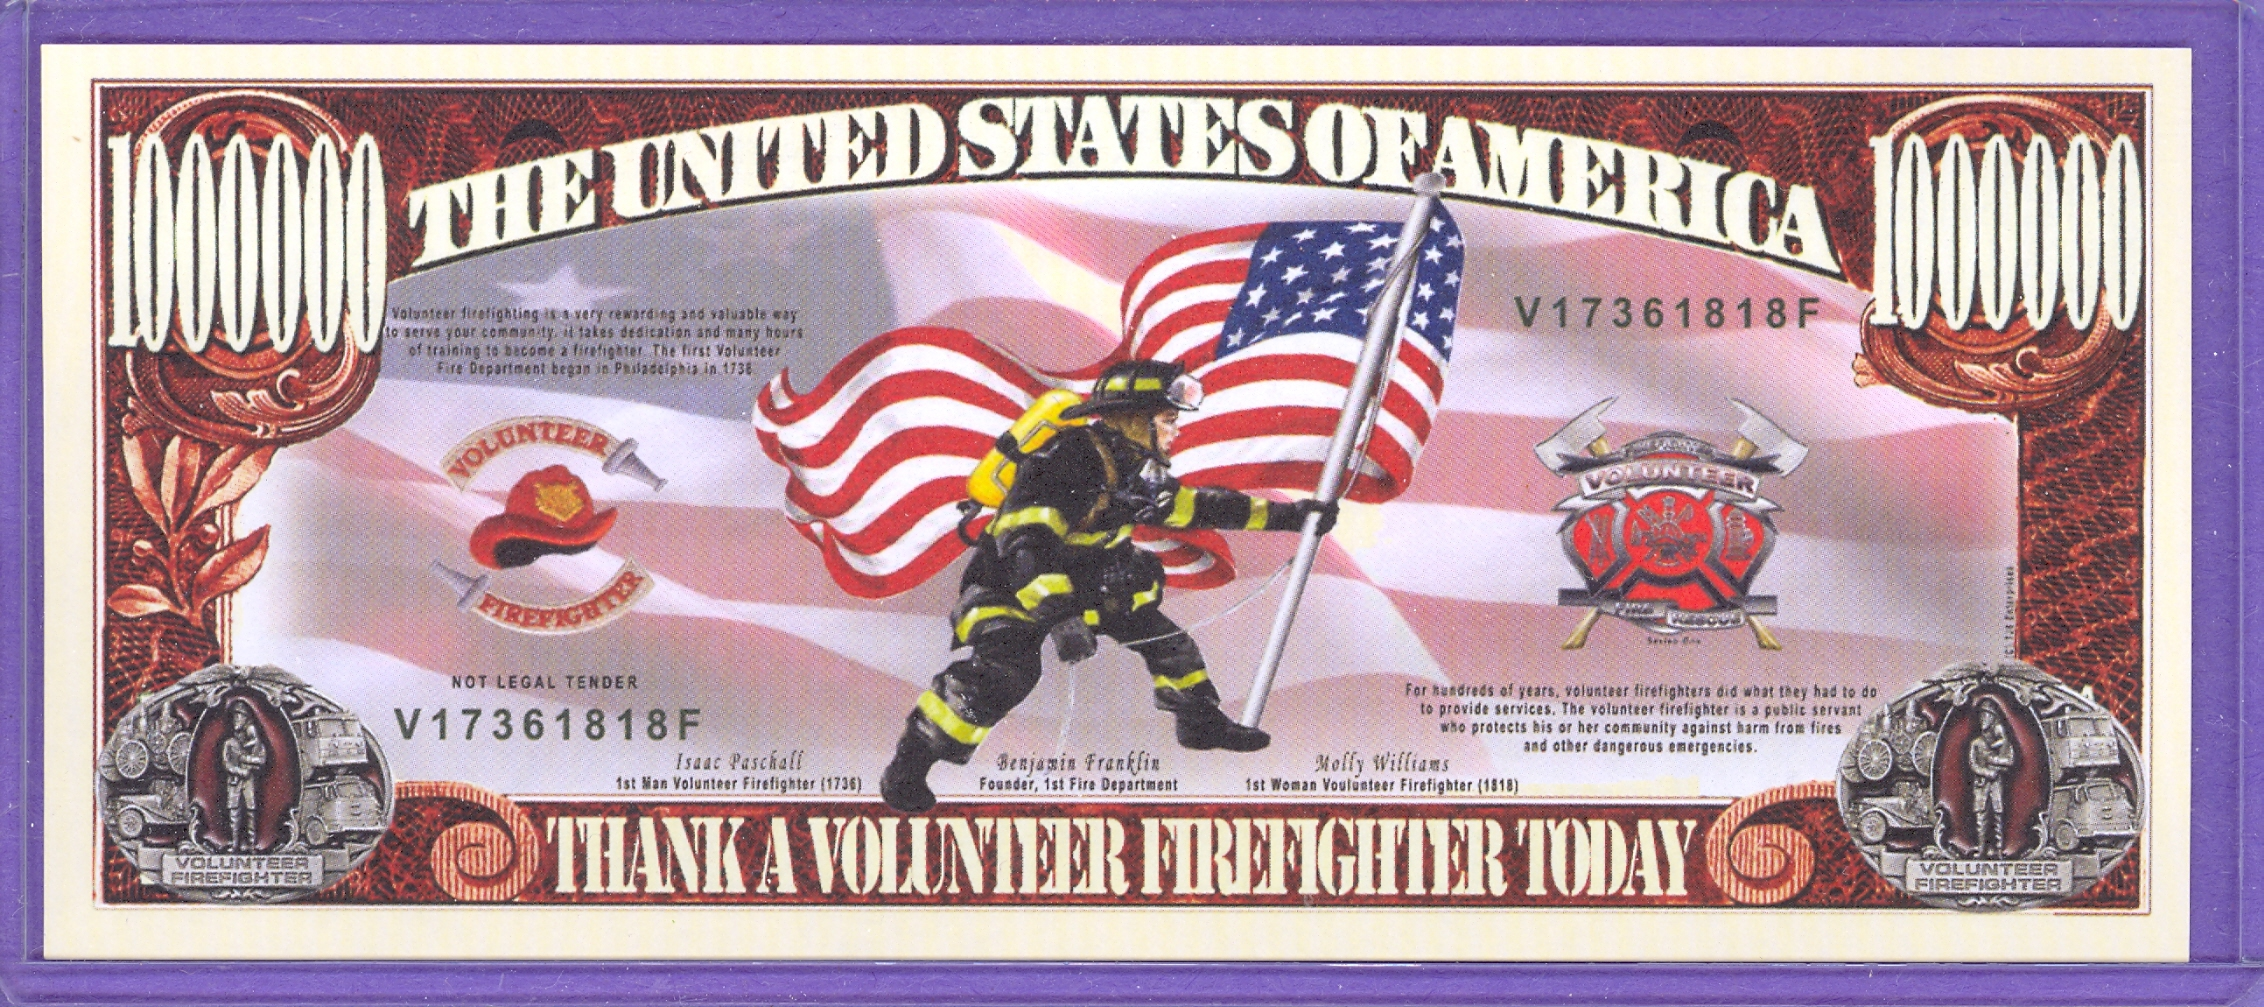 Volunteer Firefighter $1,000,000 Novelty Note